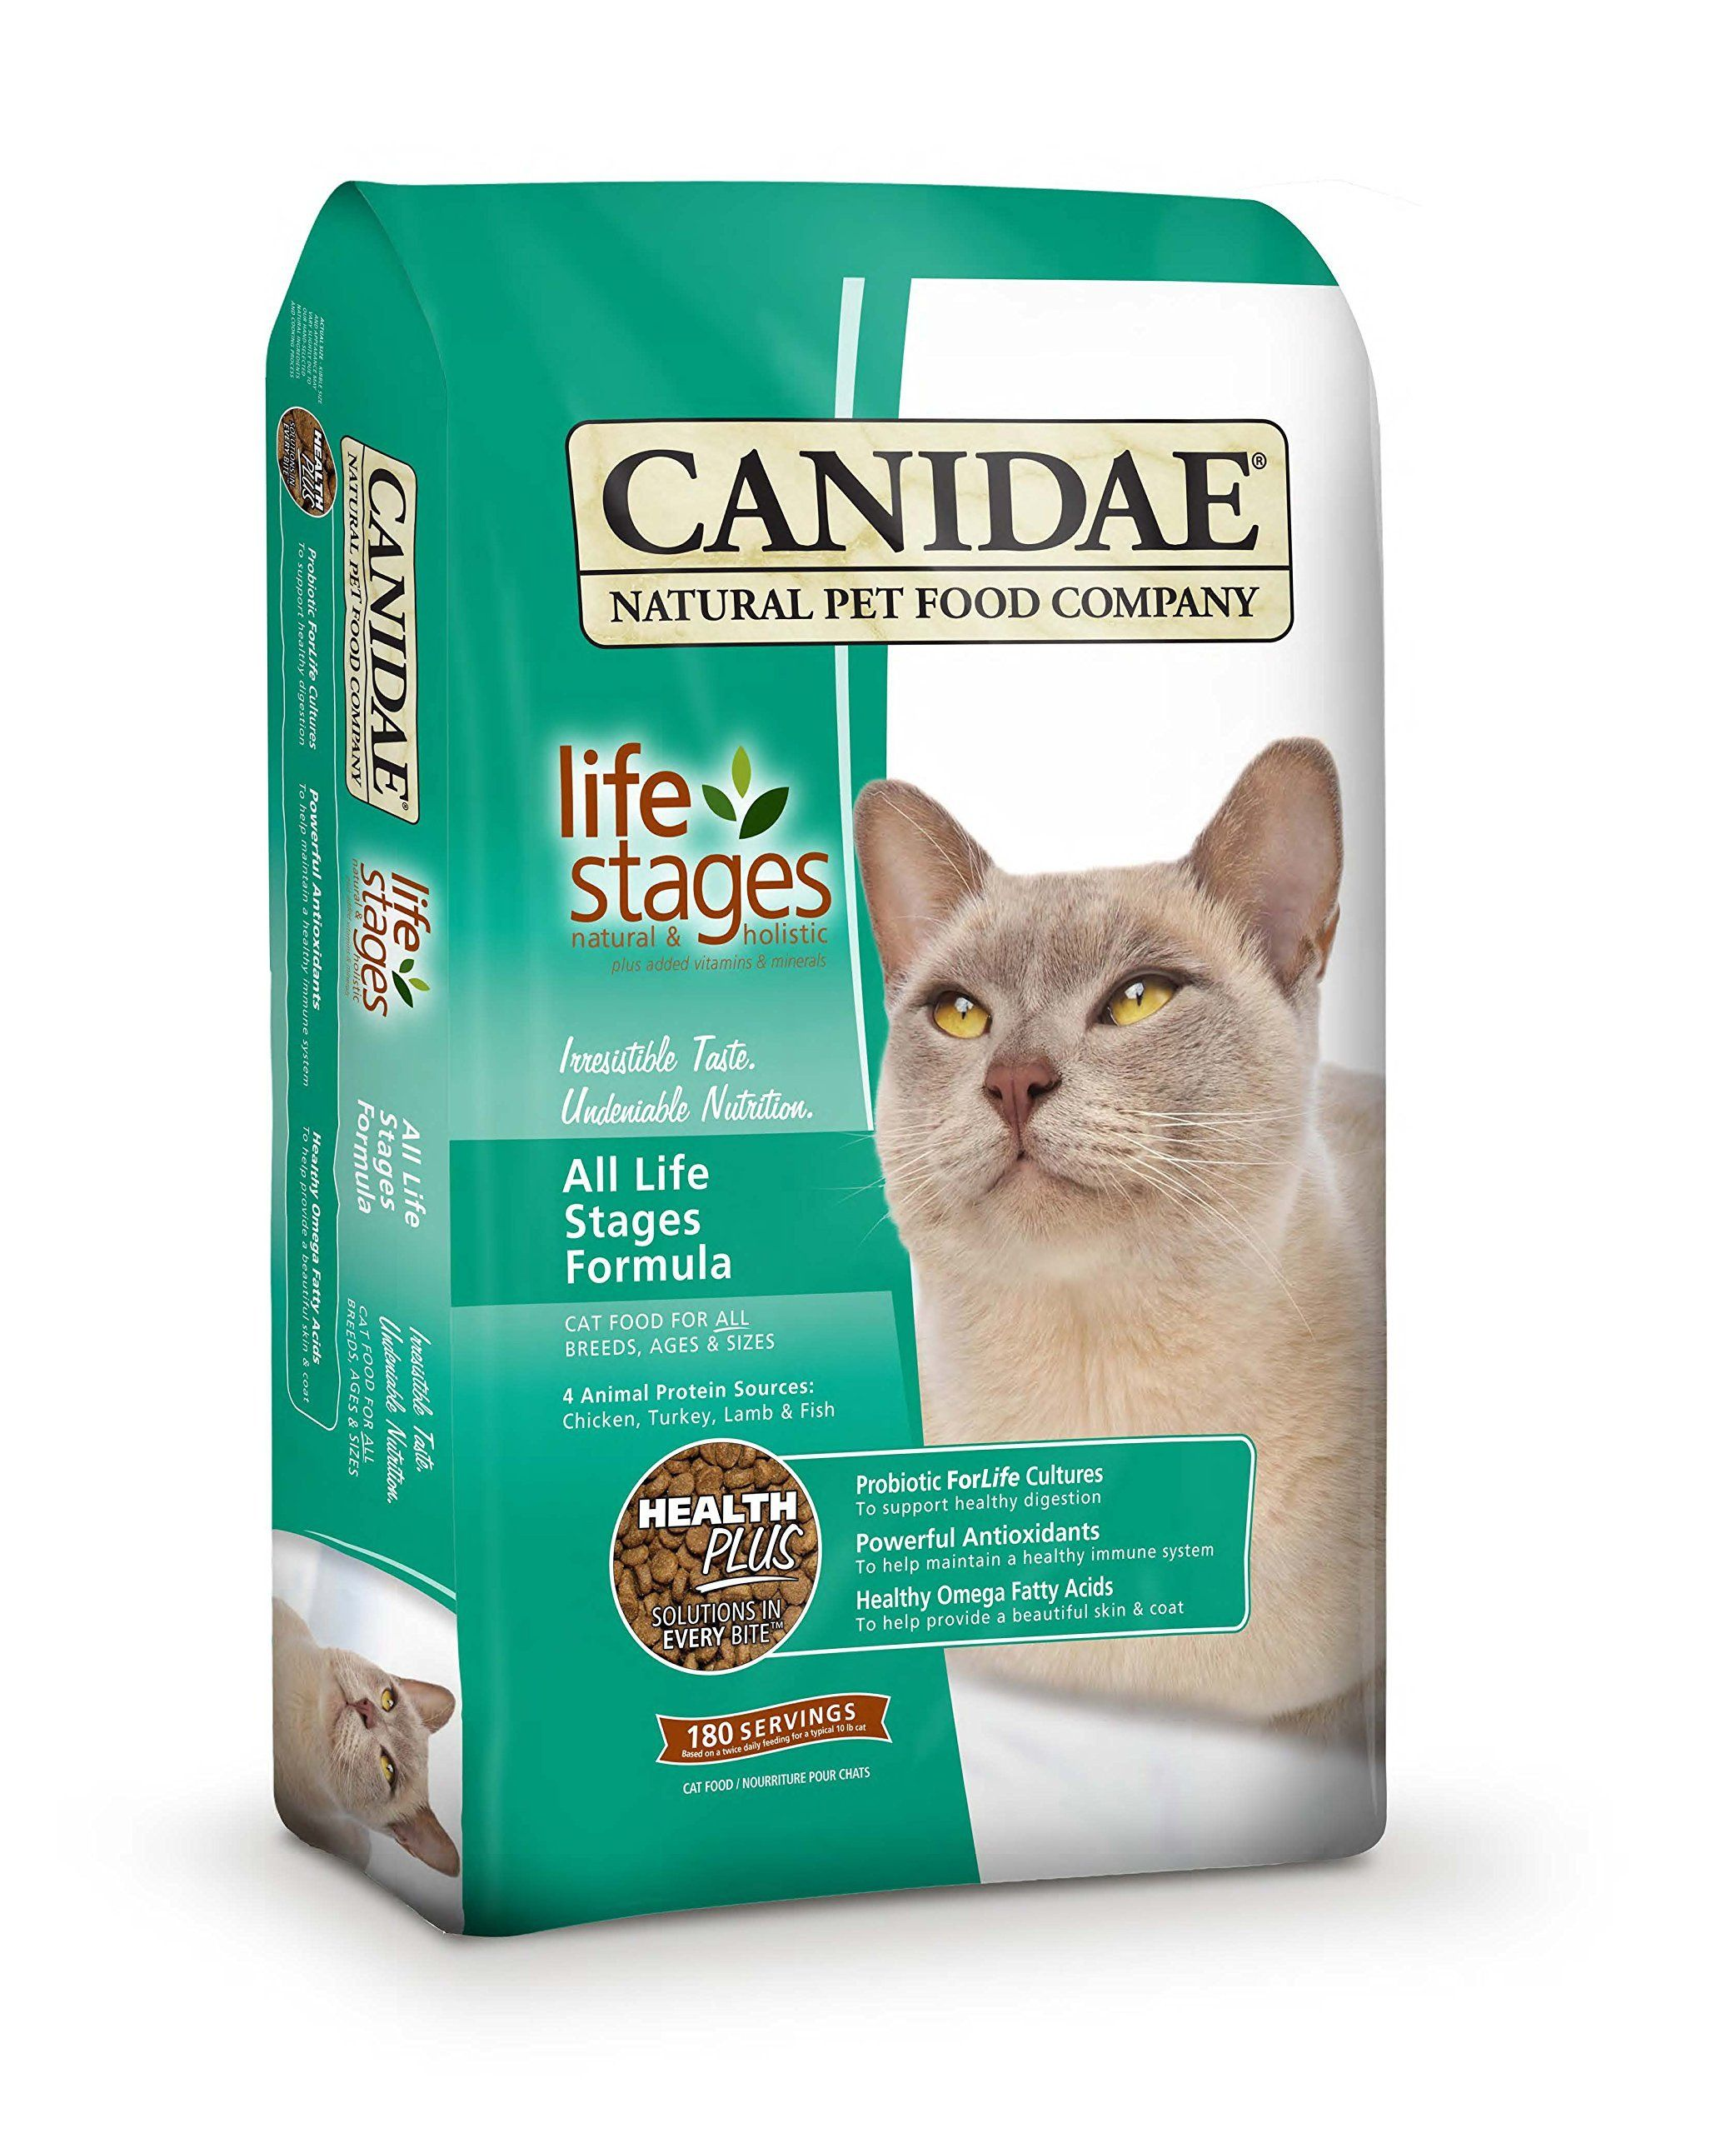 CANIDAELife Stages Dry Cat Food for Kittens Adults & Seniors Chicken, Turkey, Lamb & Fish 15-Pound